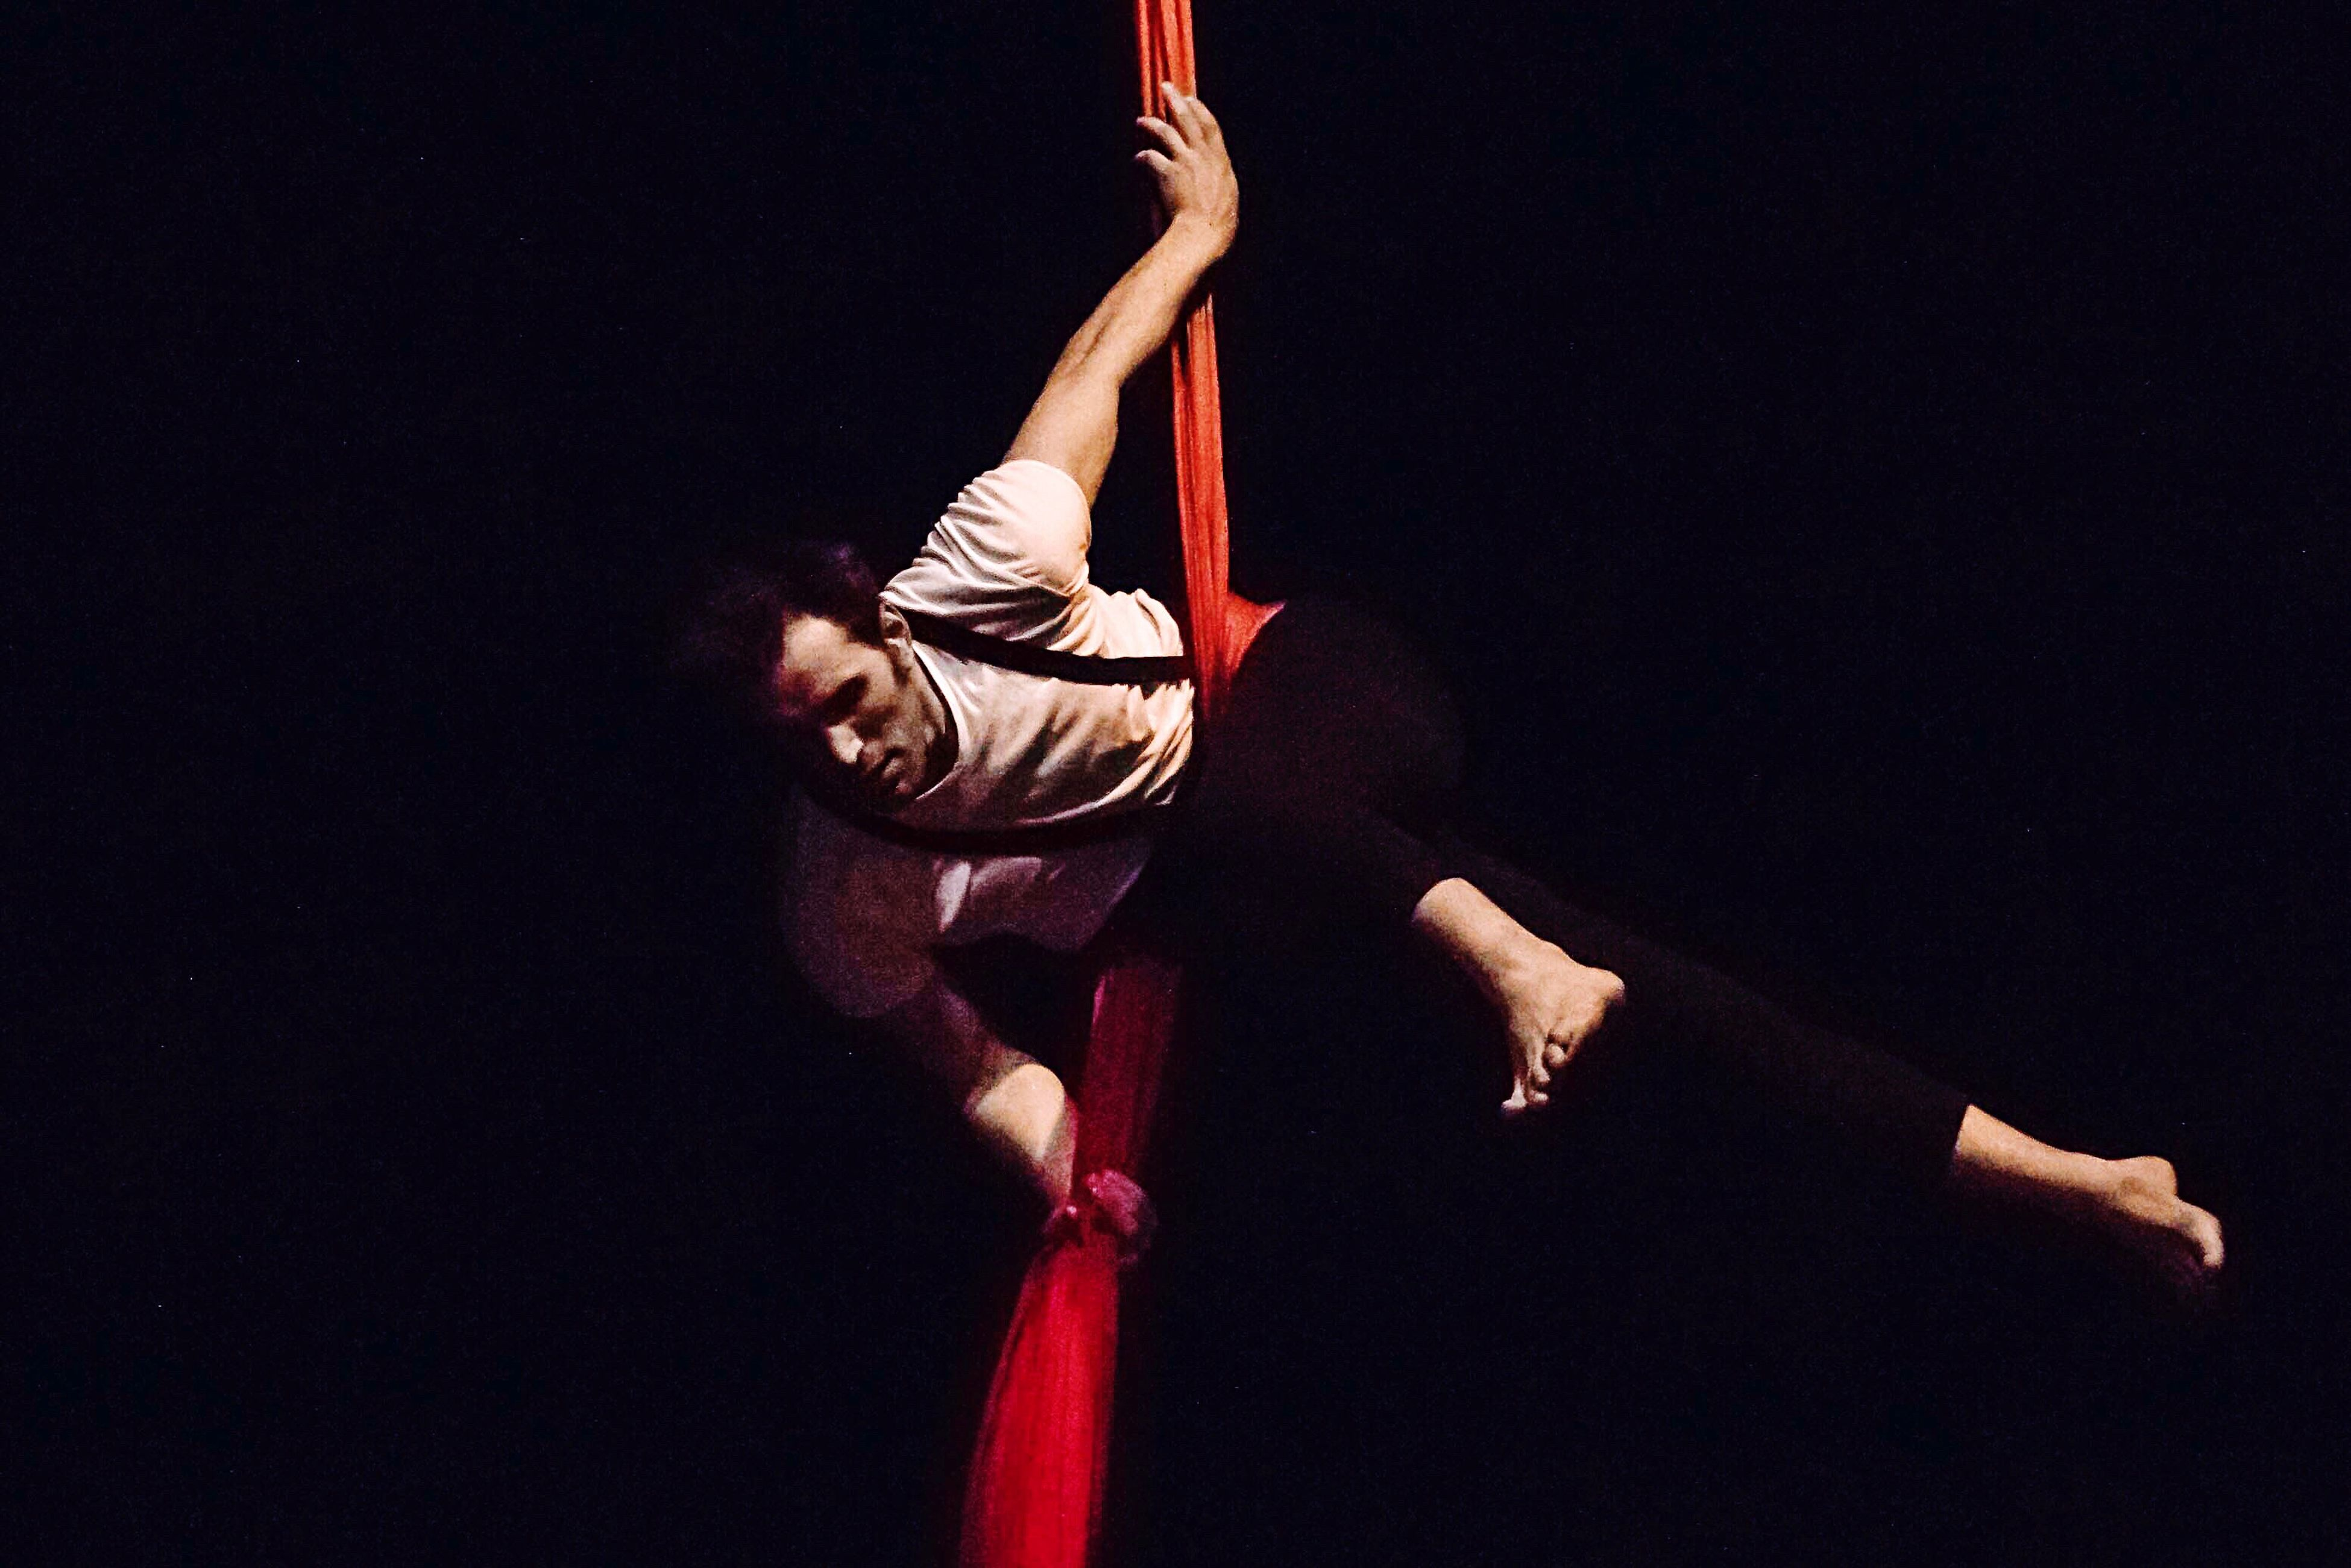 strength, full length, skill, balance, upside down, real people, performance, handstand, one person, flexibility, lifestyles, acrobat, exercising, concentration, black background, leisure activity, studio shot, men, young adult, acrobatic activity, indoors, day, people